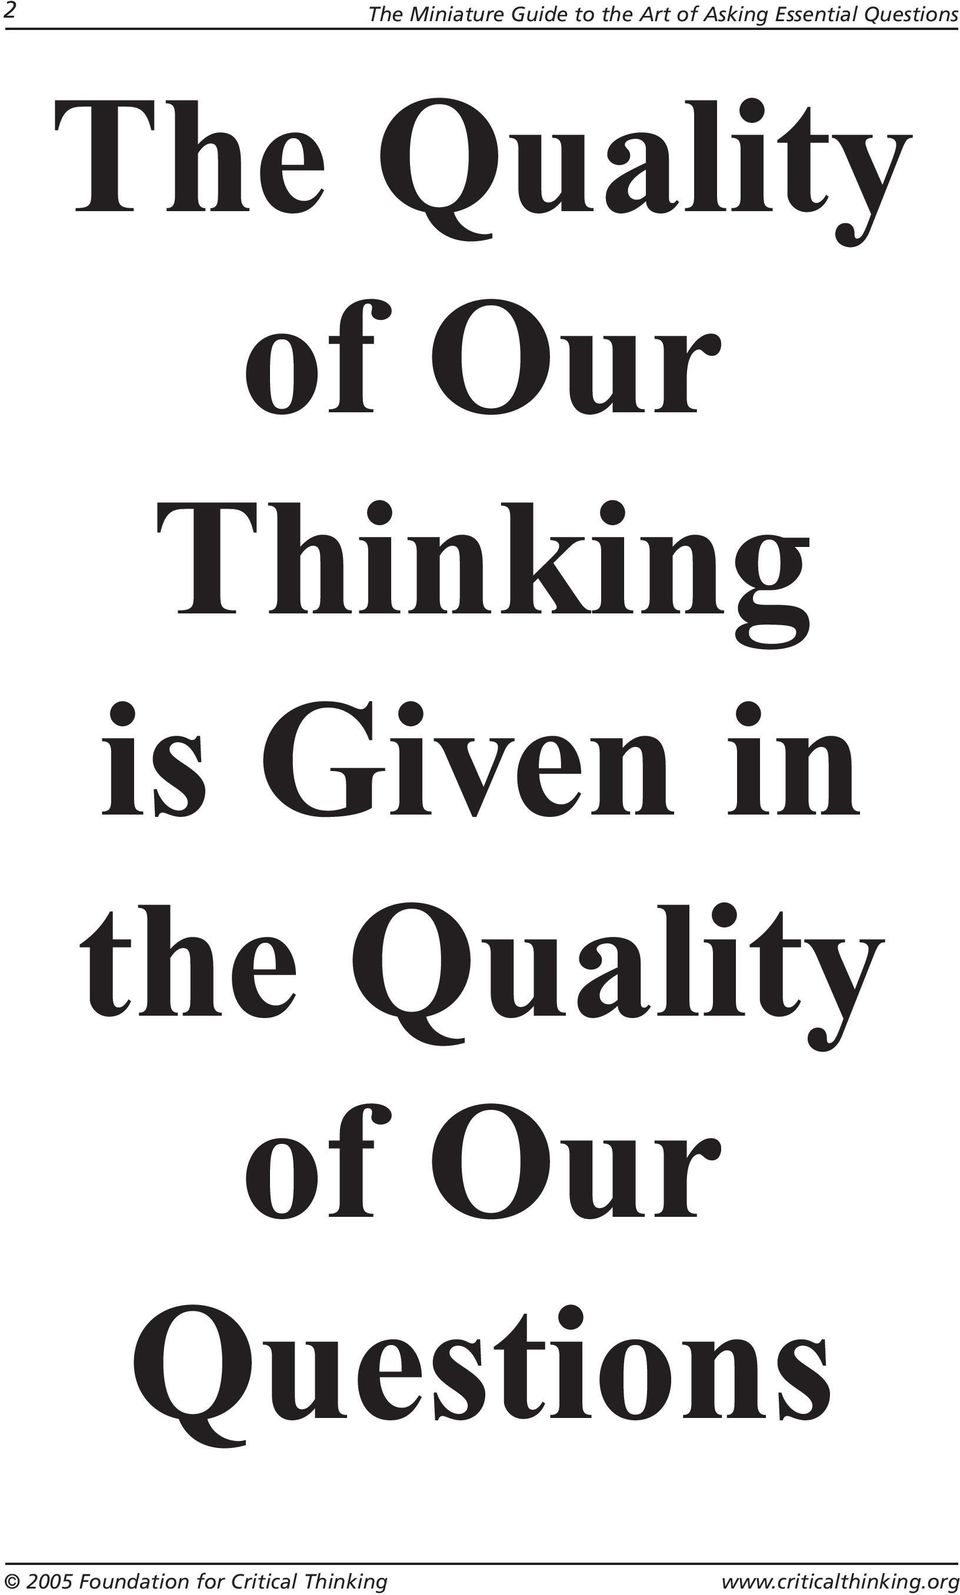 The Quality of Our Thinking is